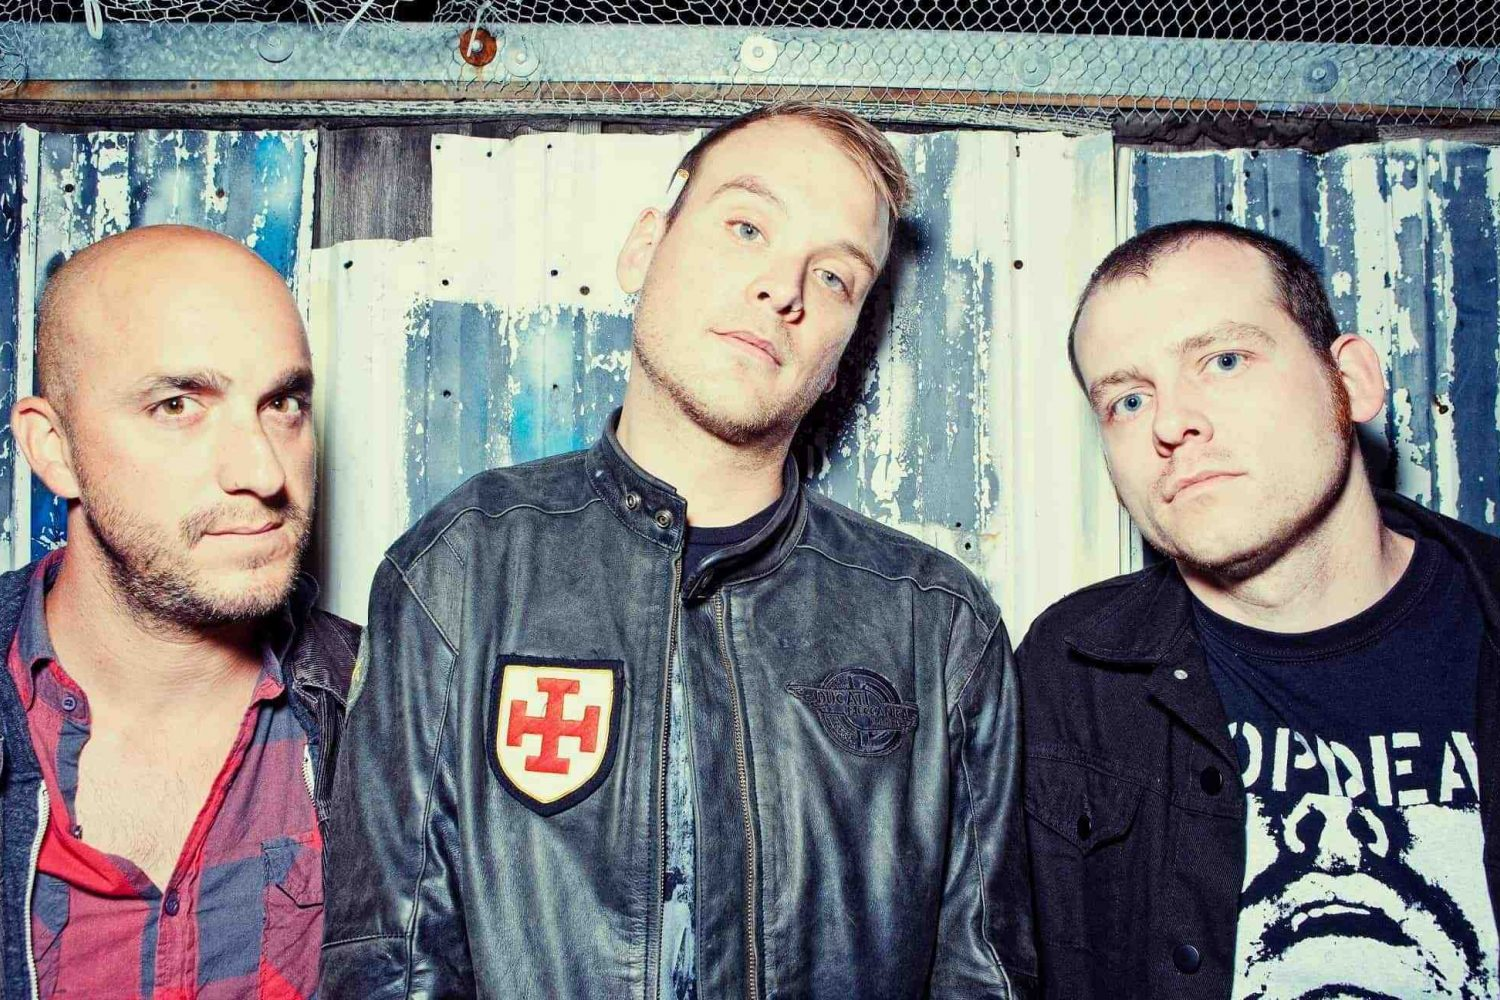 Alkaline Trio have pulled out of this weekend's Self-Help Festival